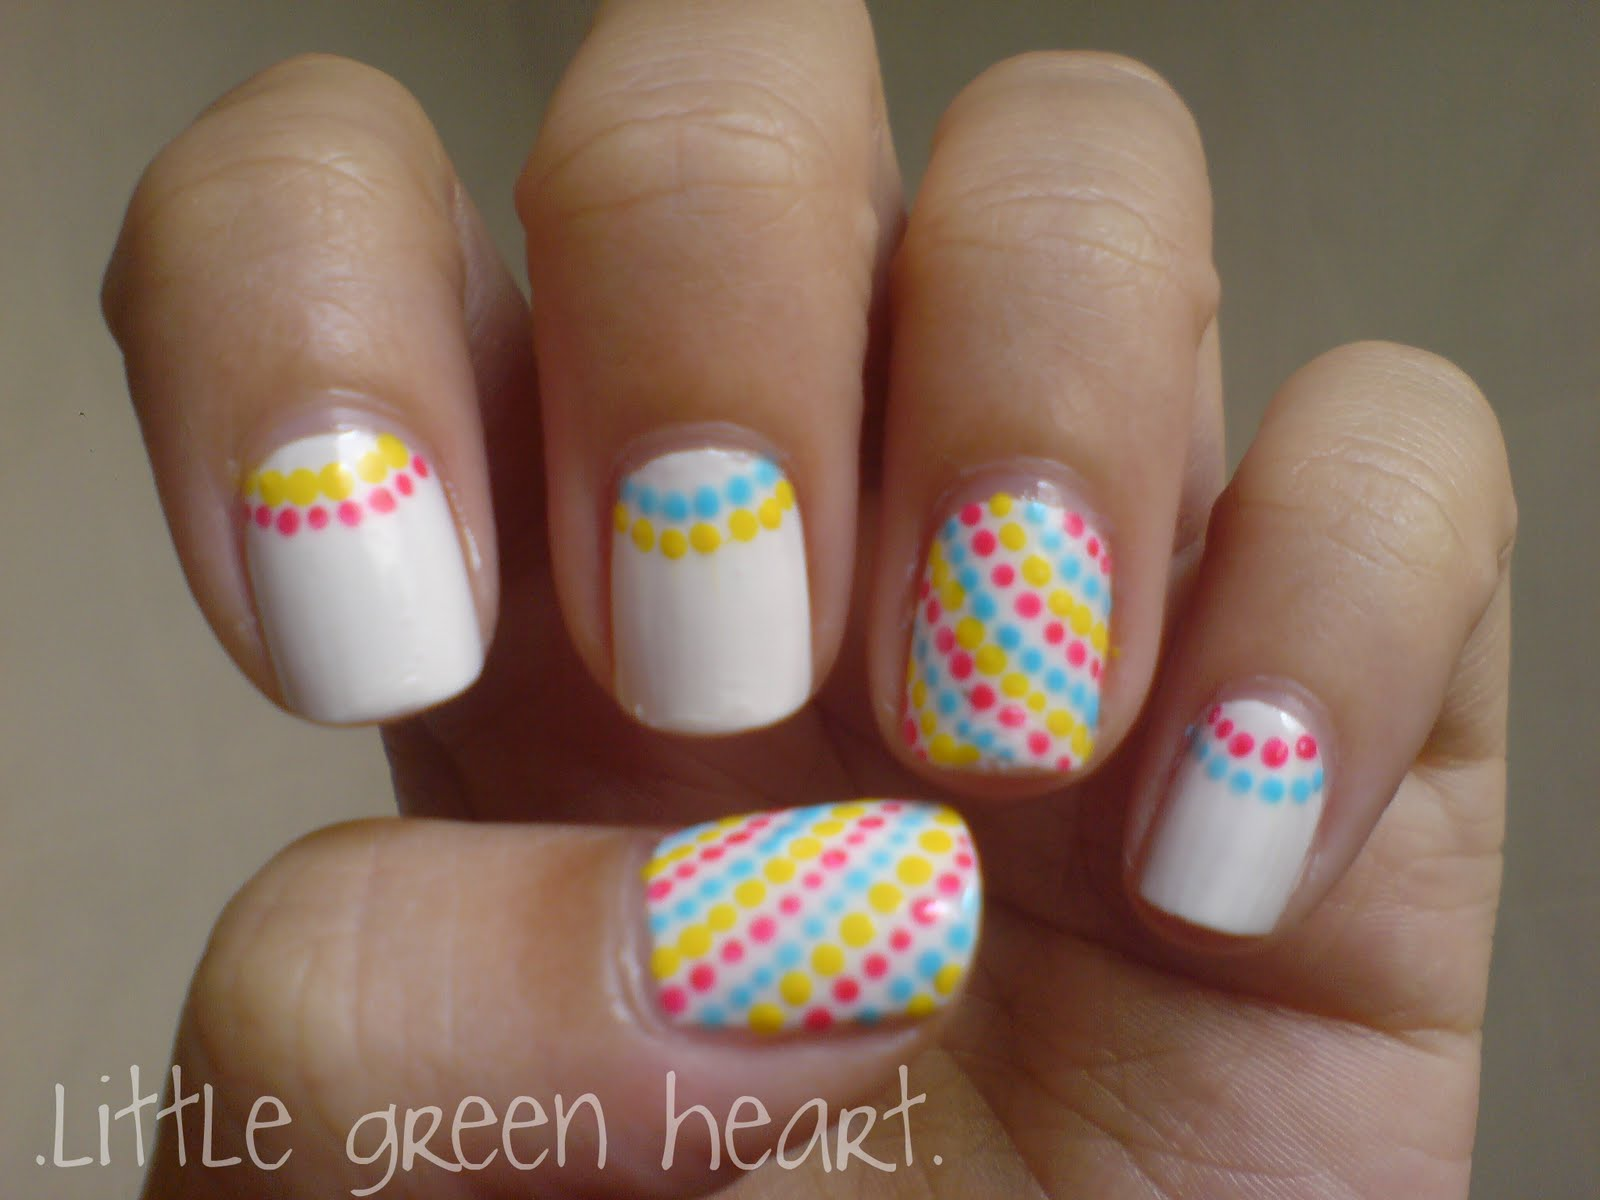 Cute Nail Art Designs for Short Nails